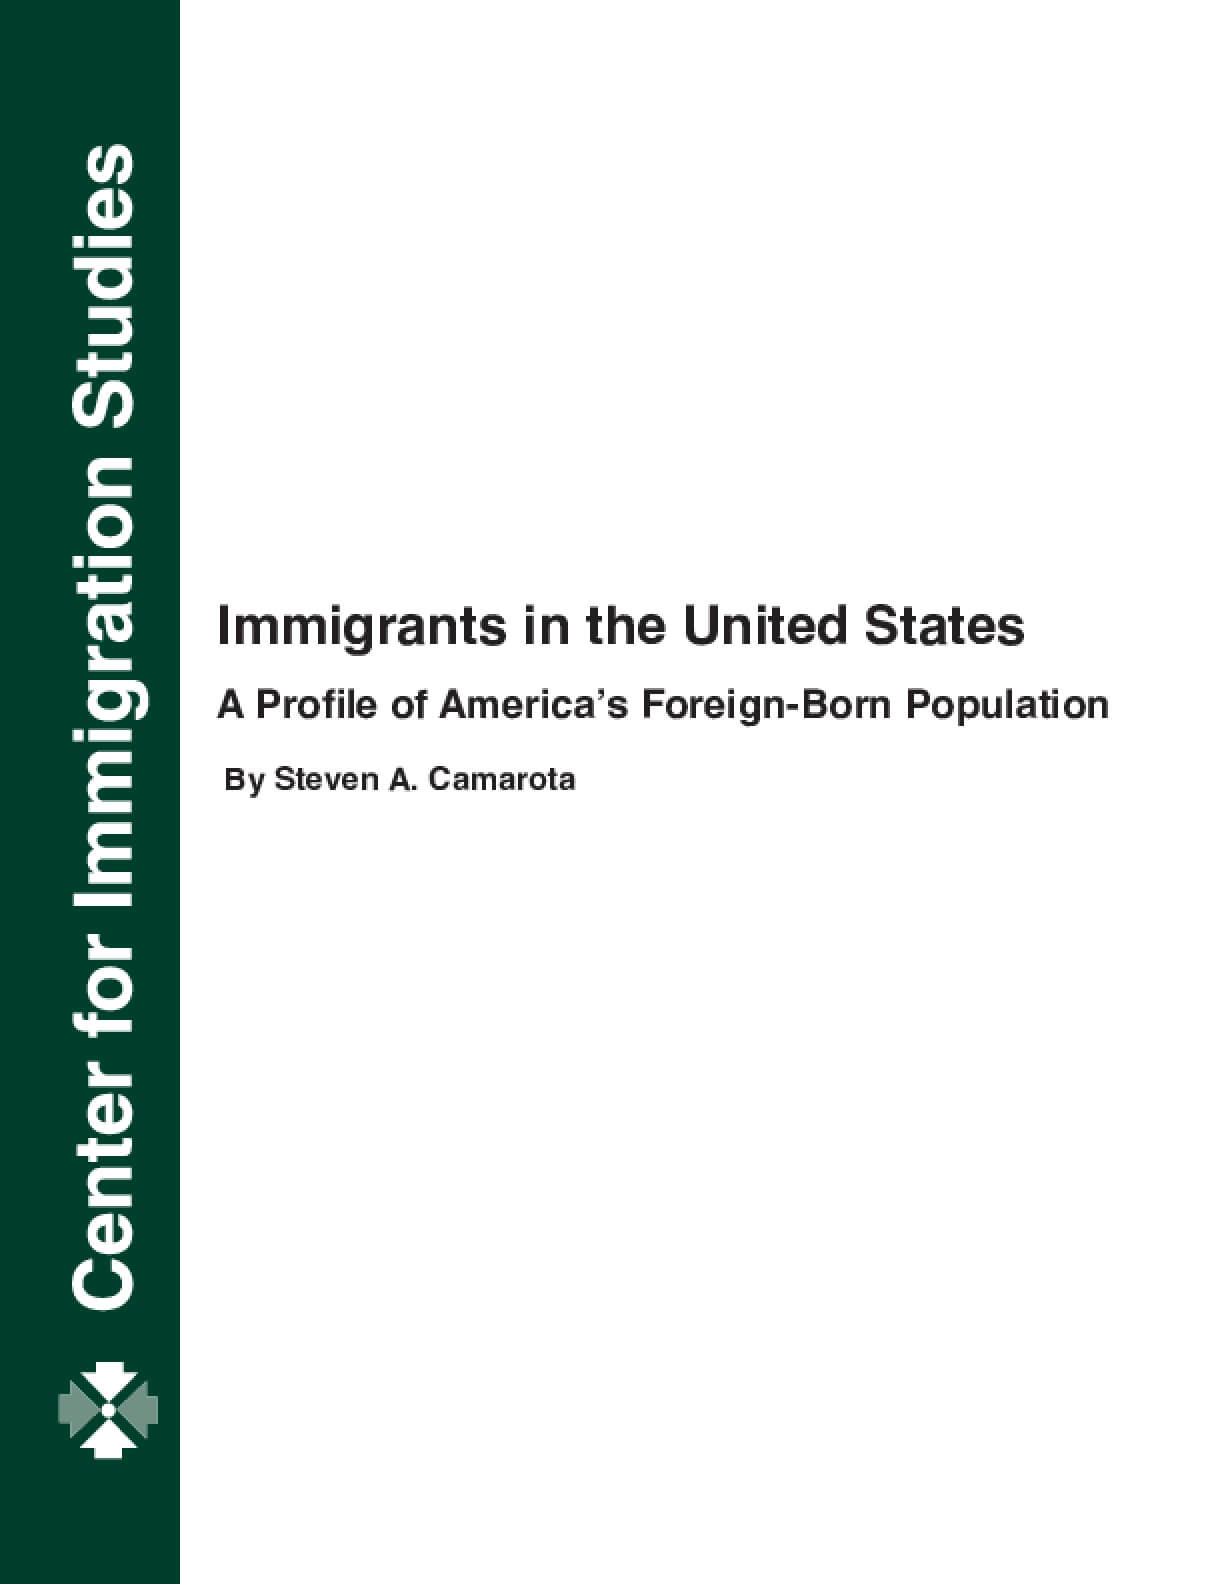 Immigrants in the United States: A Profile of America's Foreign-Born Population